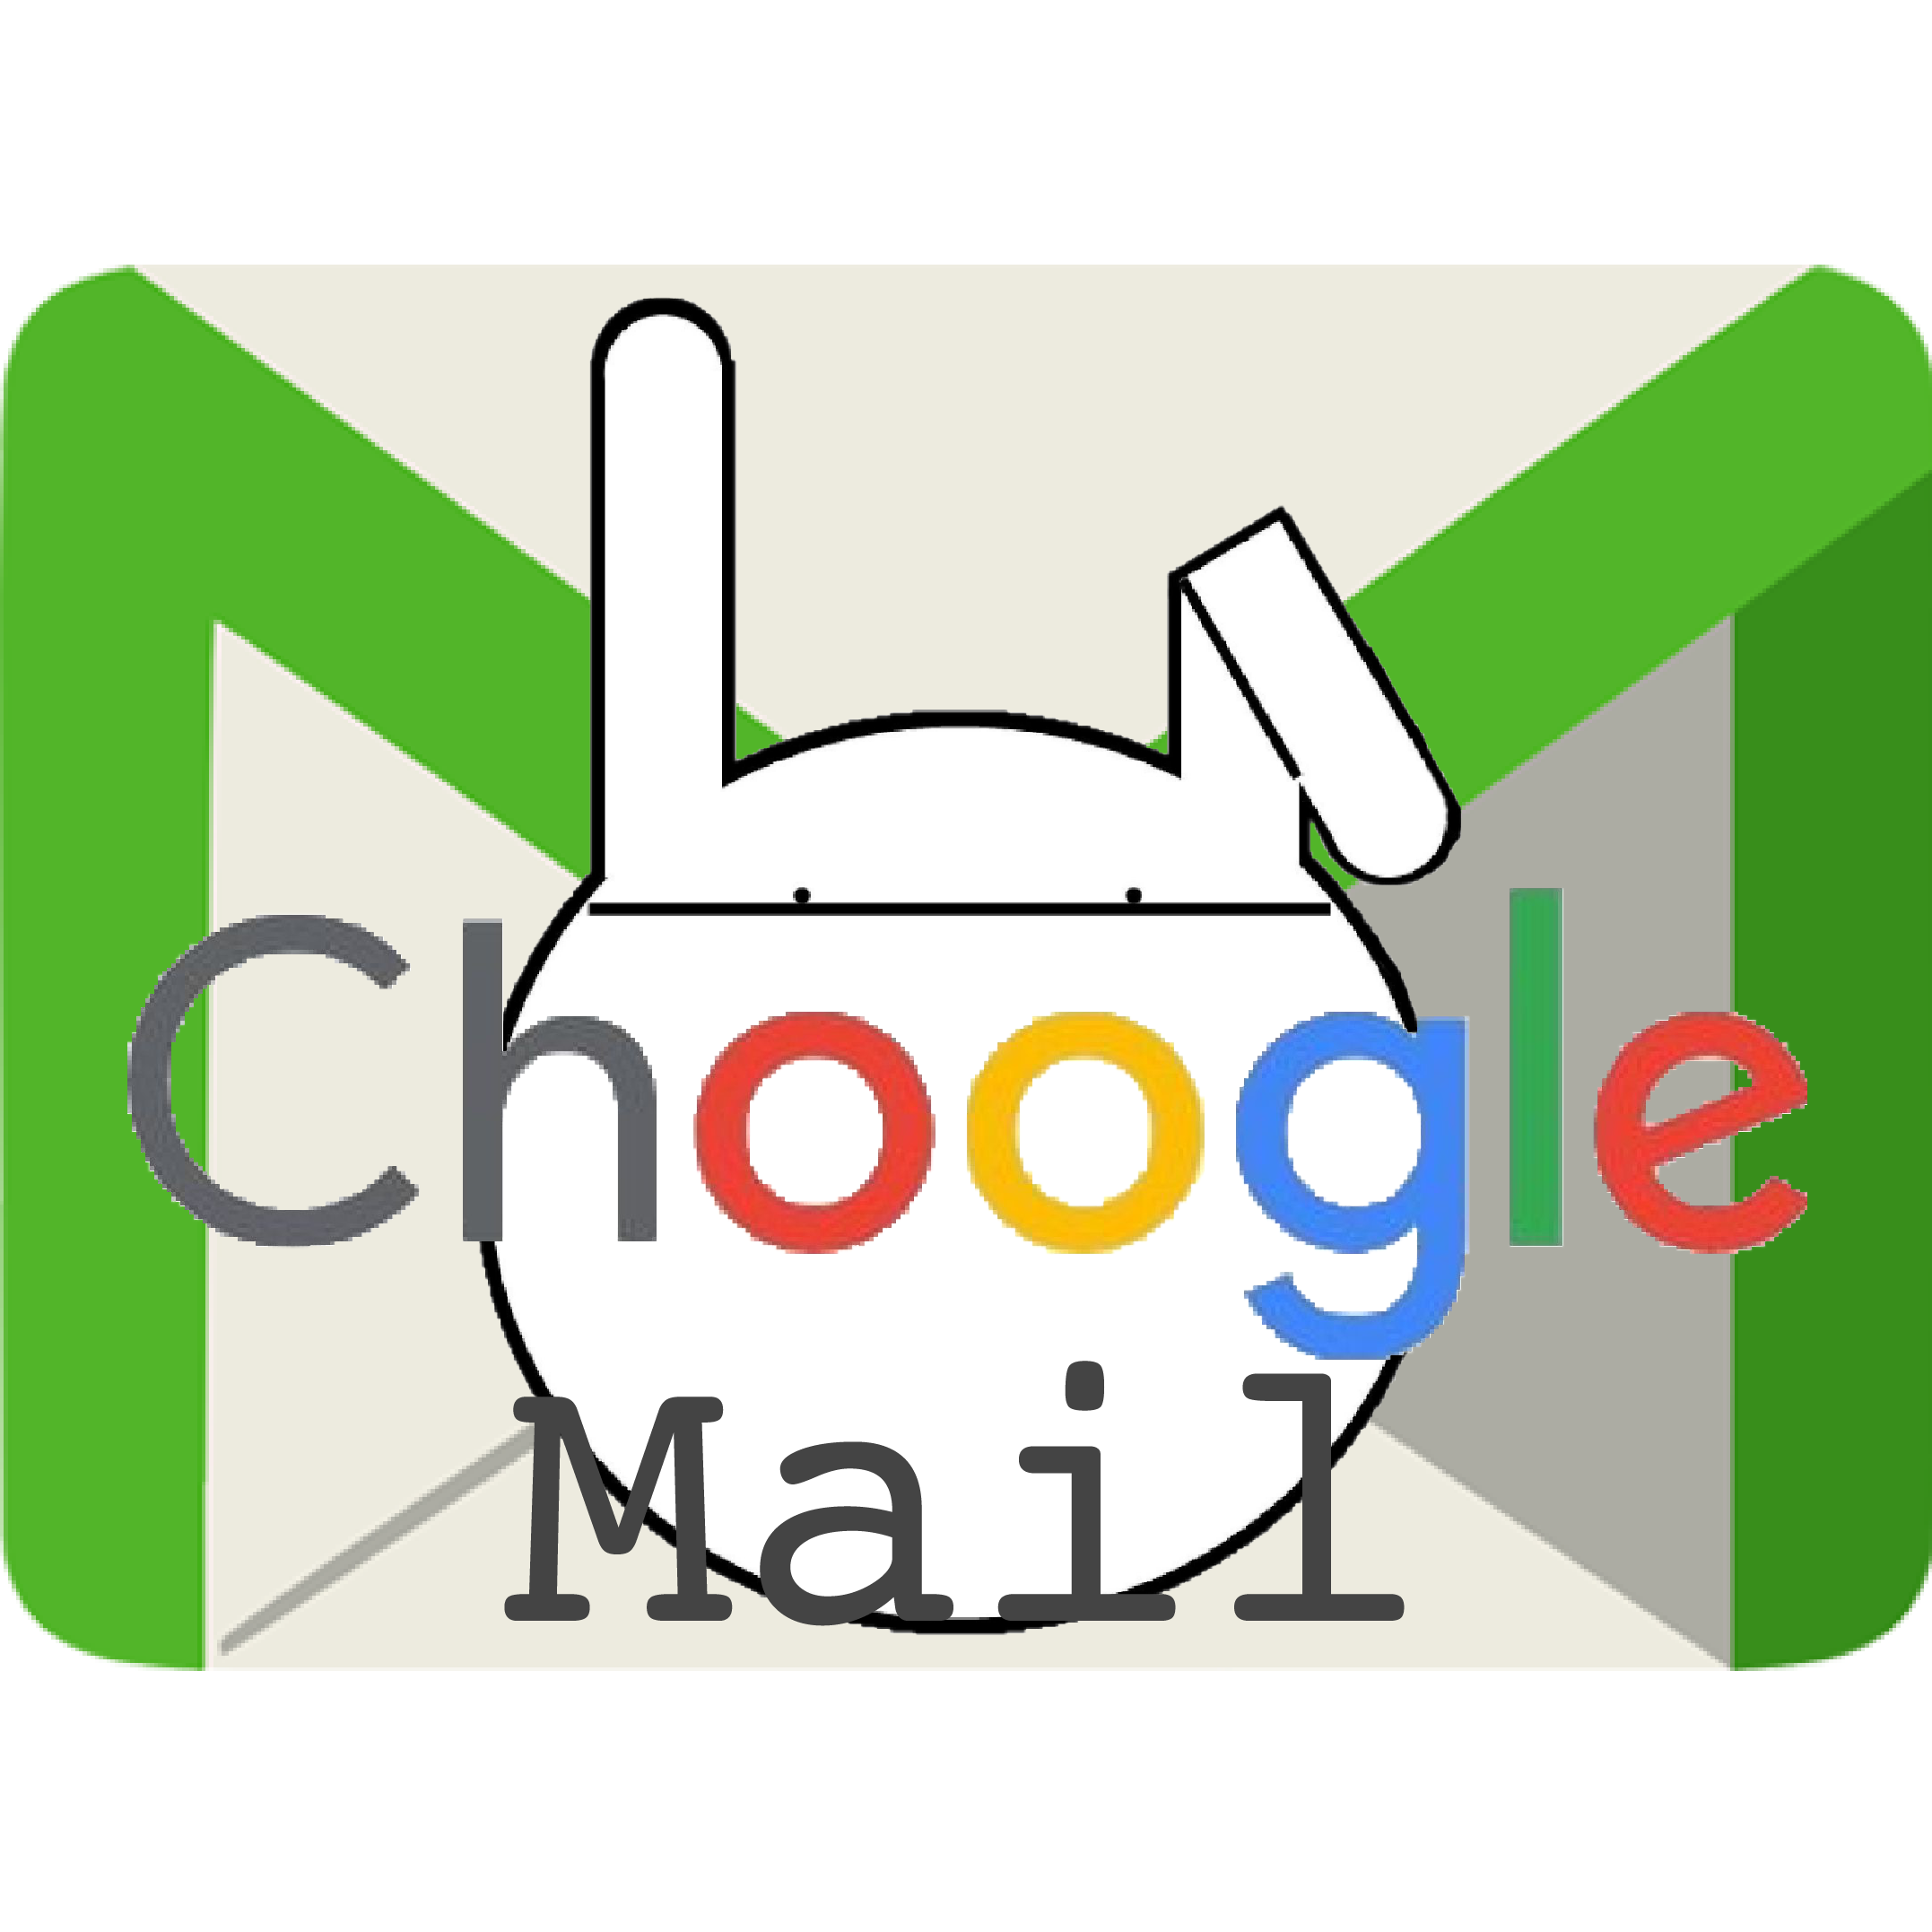 Choogle Mail